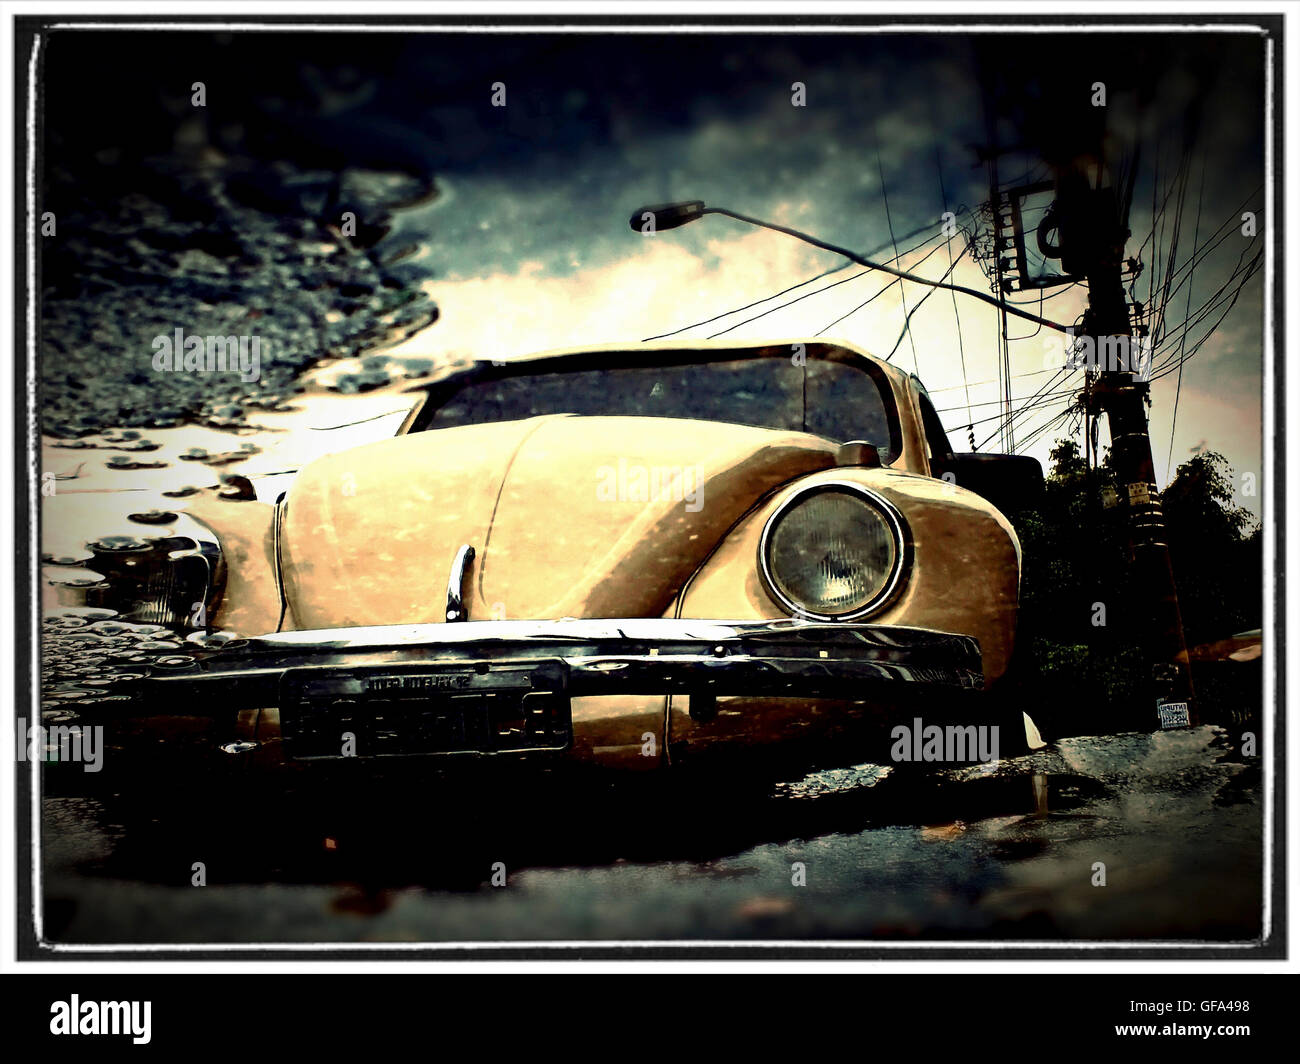 yellow vw beetle reflecting on a rainy street in  Sao Paulo - Stock Image